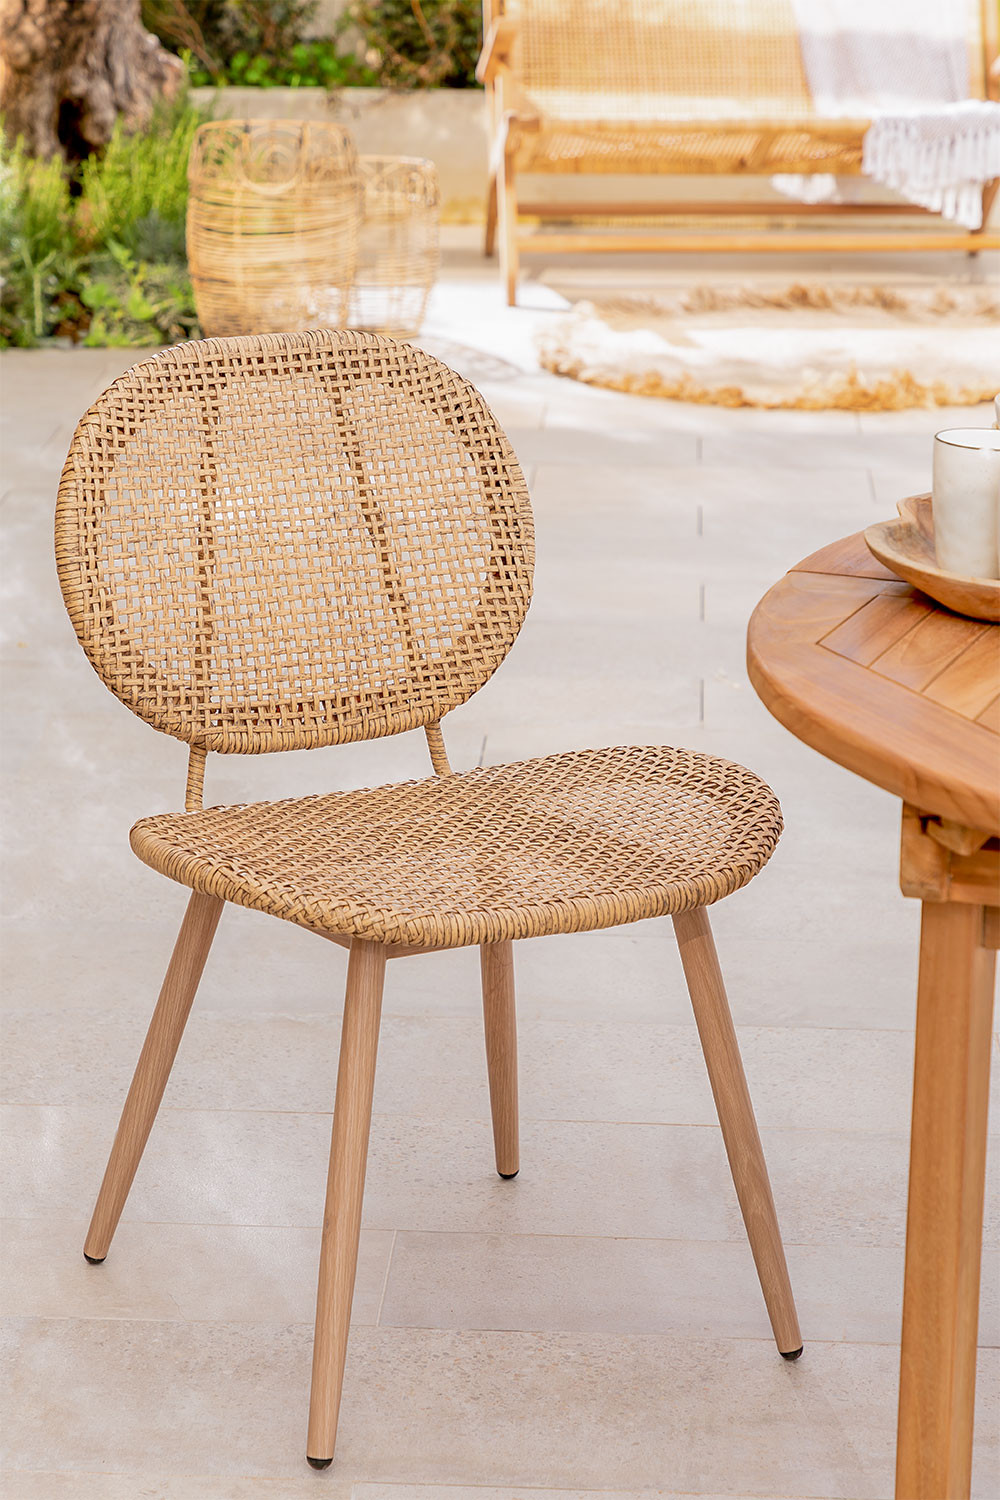 Synthetic Wicker Garden Chair Mity, gallery image 1